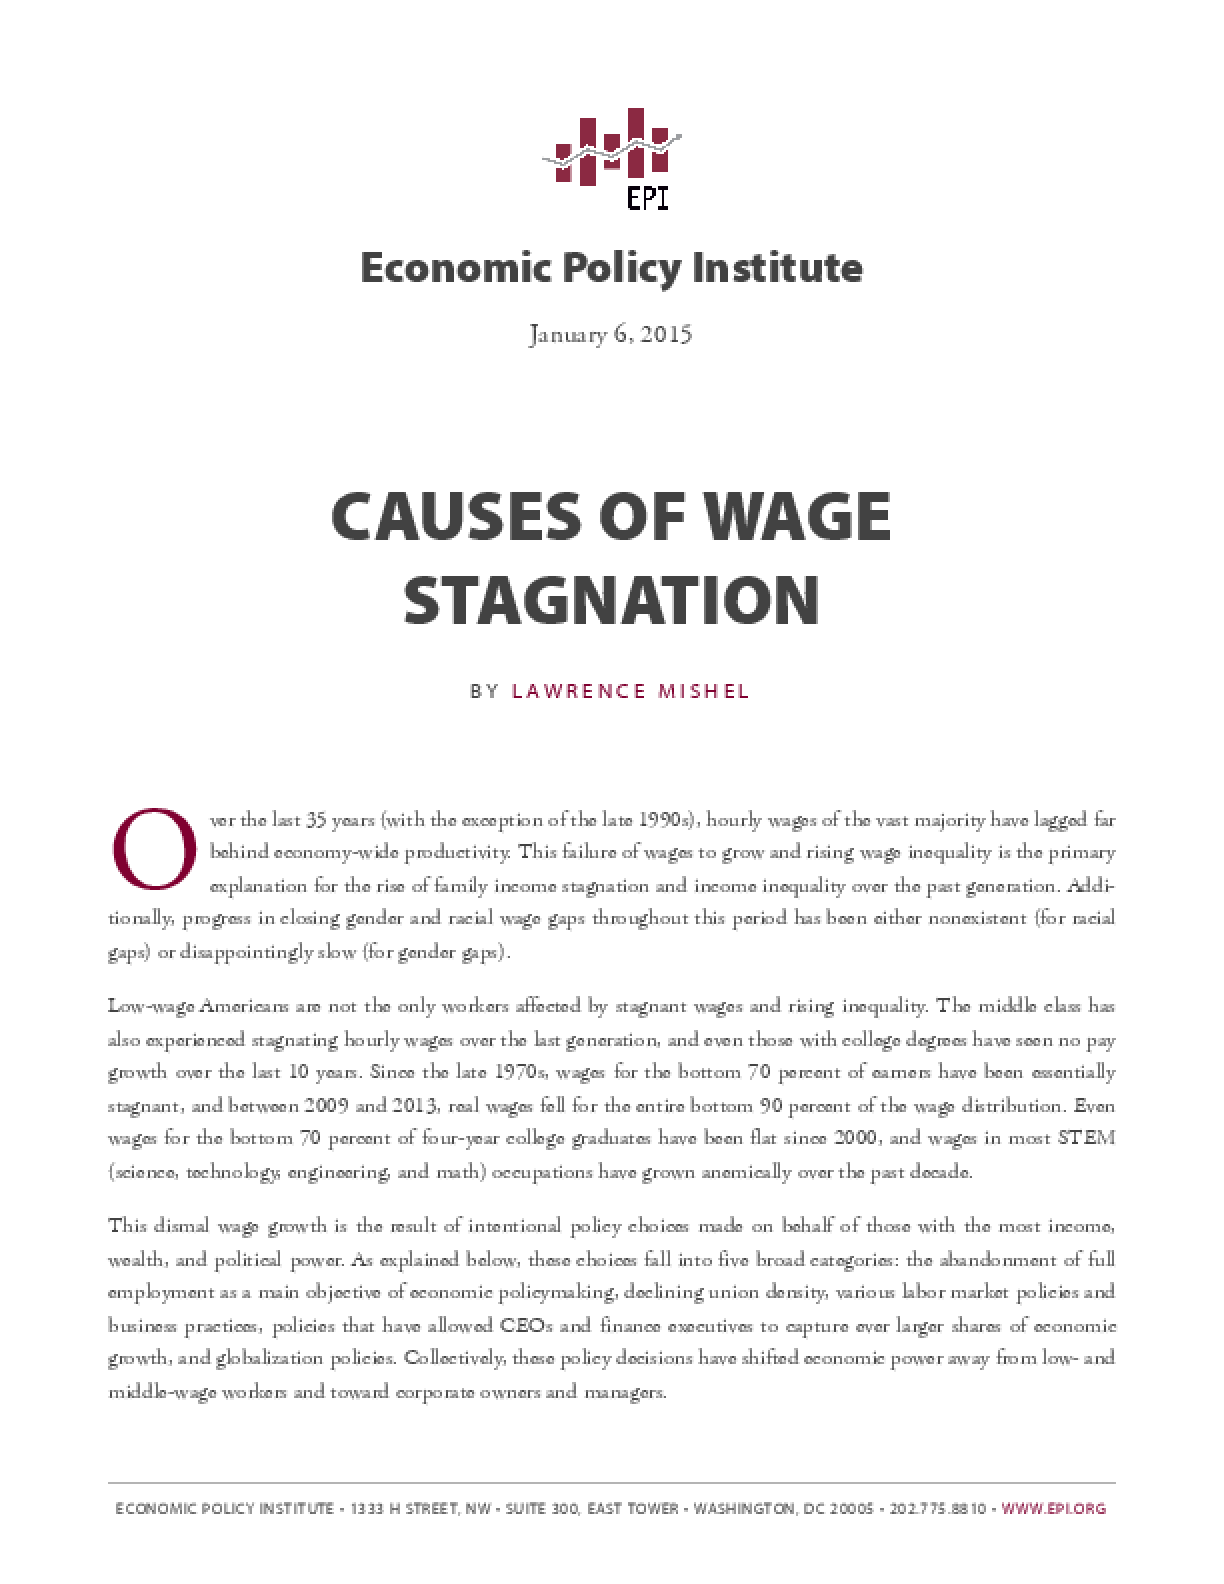 Causes of Wage Stagnation